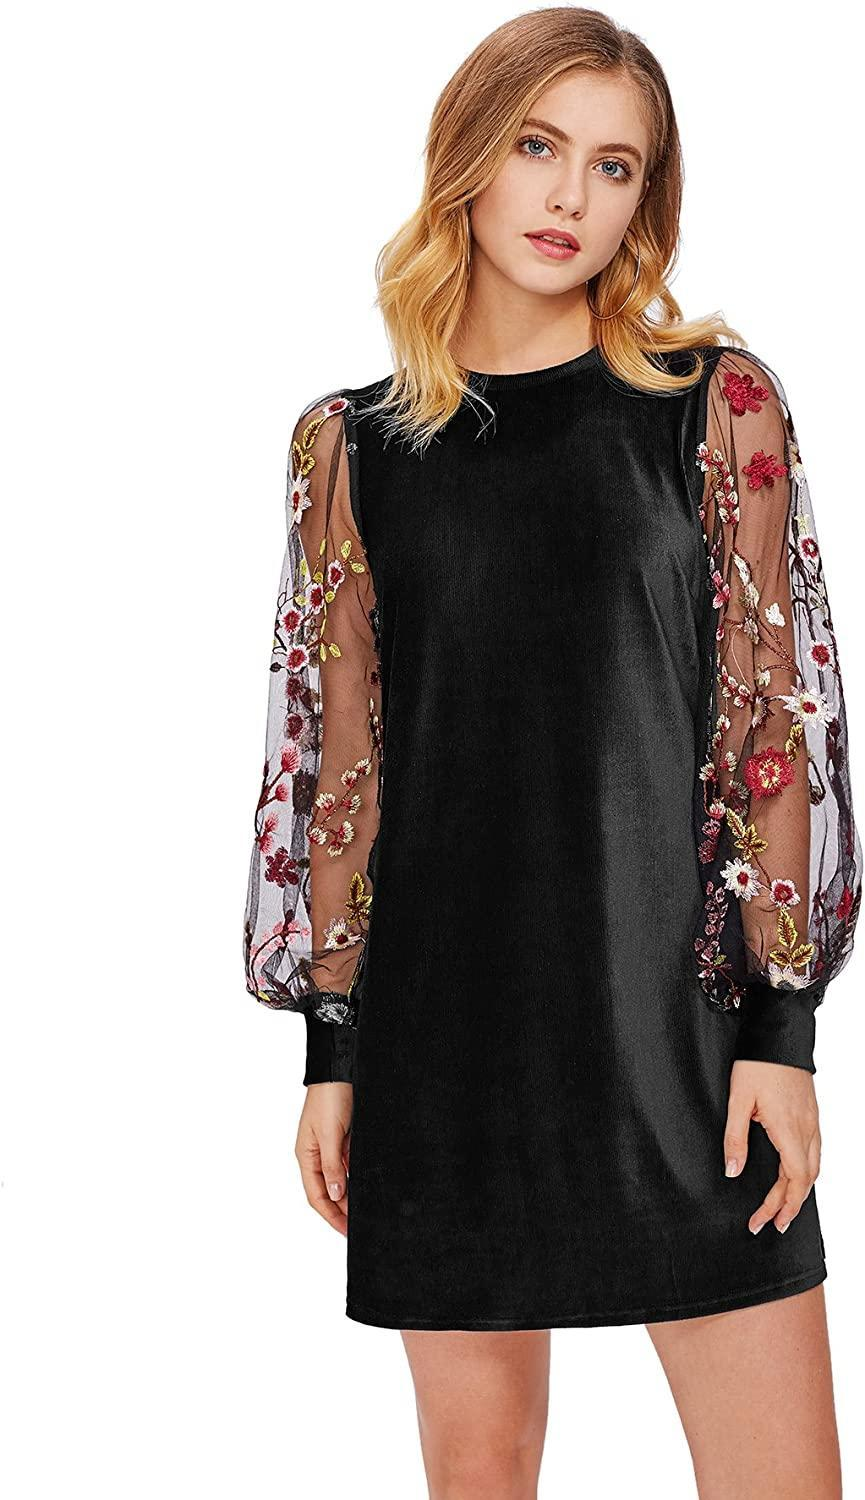 "<br><br><strong>DIDK</strong> Tunic Dress with Embroidered Floral Mesh Bishop Sleeve, $, available at <a href=""https://www.amazon.com/dp/B0773GTTM4/"" rel=""nofollow noopener"" target=""_blank"" data-ylk=""slk:Amazon"" class=""link rapid-noclick-resp"">Amazon</a>"